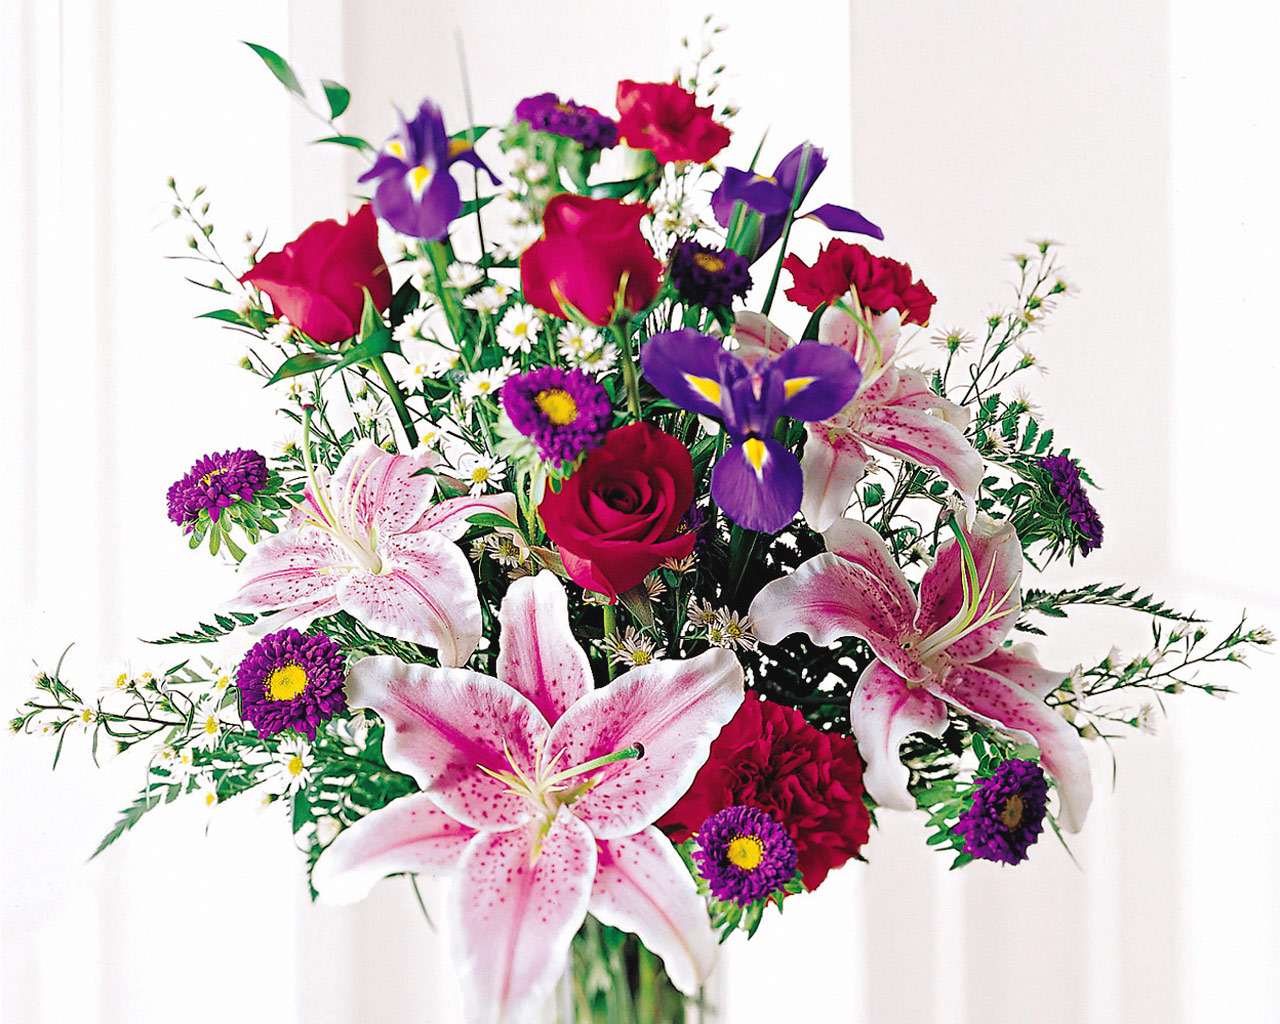 http://art-apple.ru/albums/flowers/hi/Stunning_Beauty_Bouquet_-_Roses,_Iris,_Stargazer_Lilies,_Carnations,_Asters.jpg